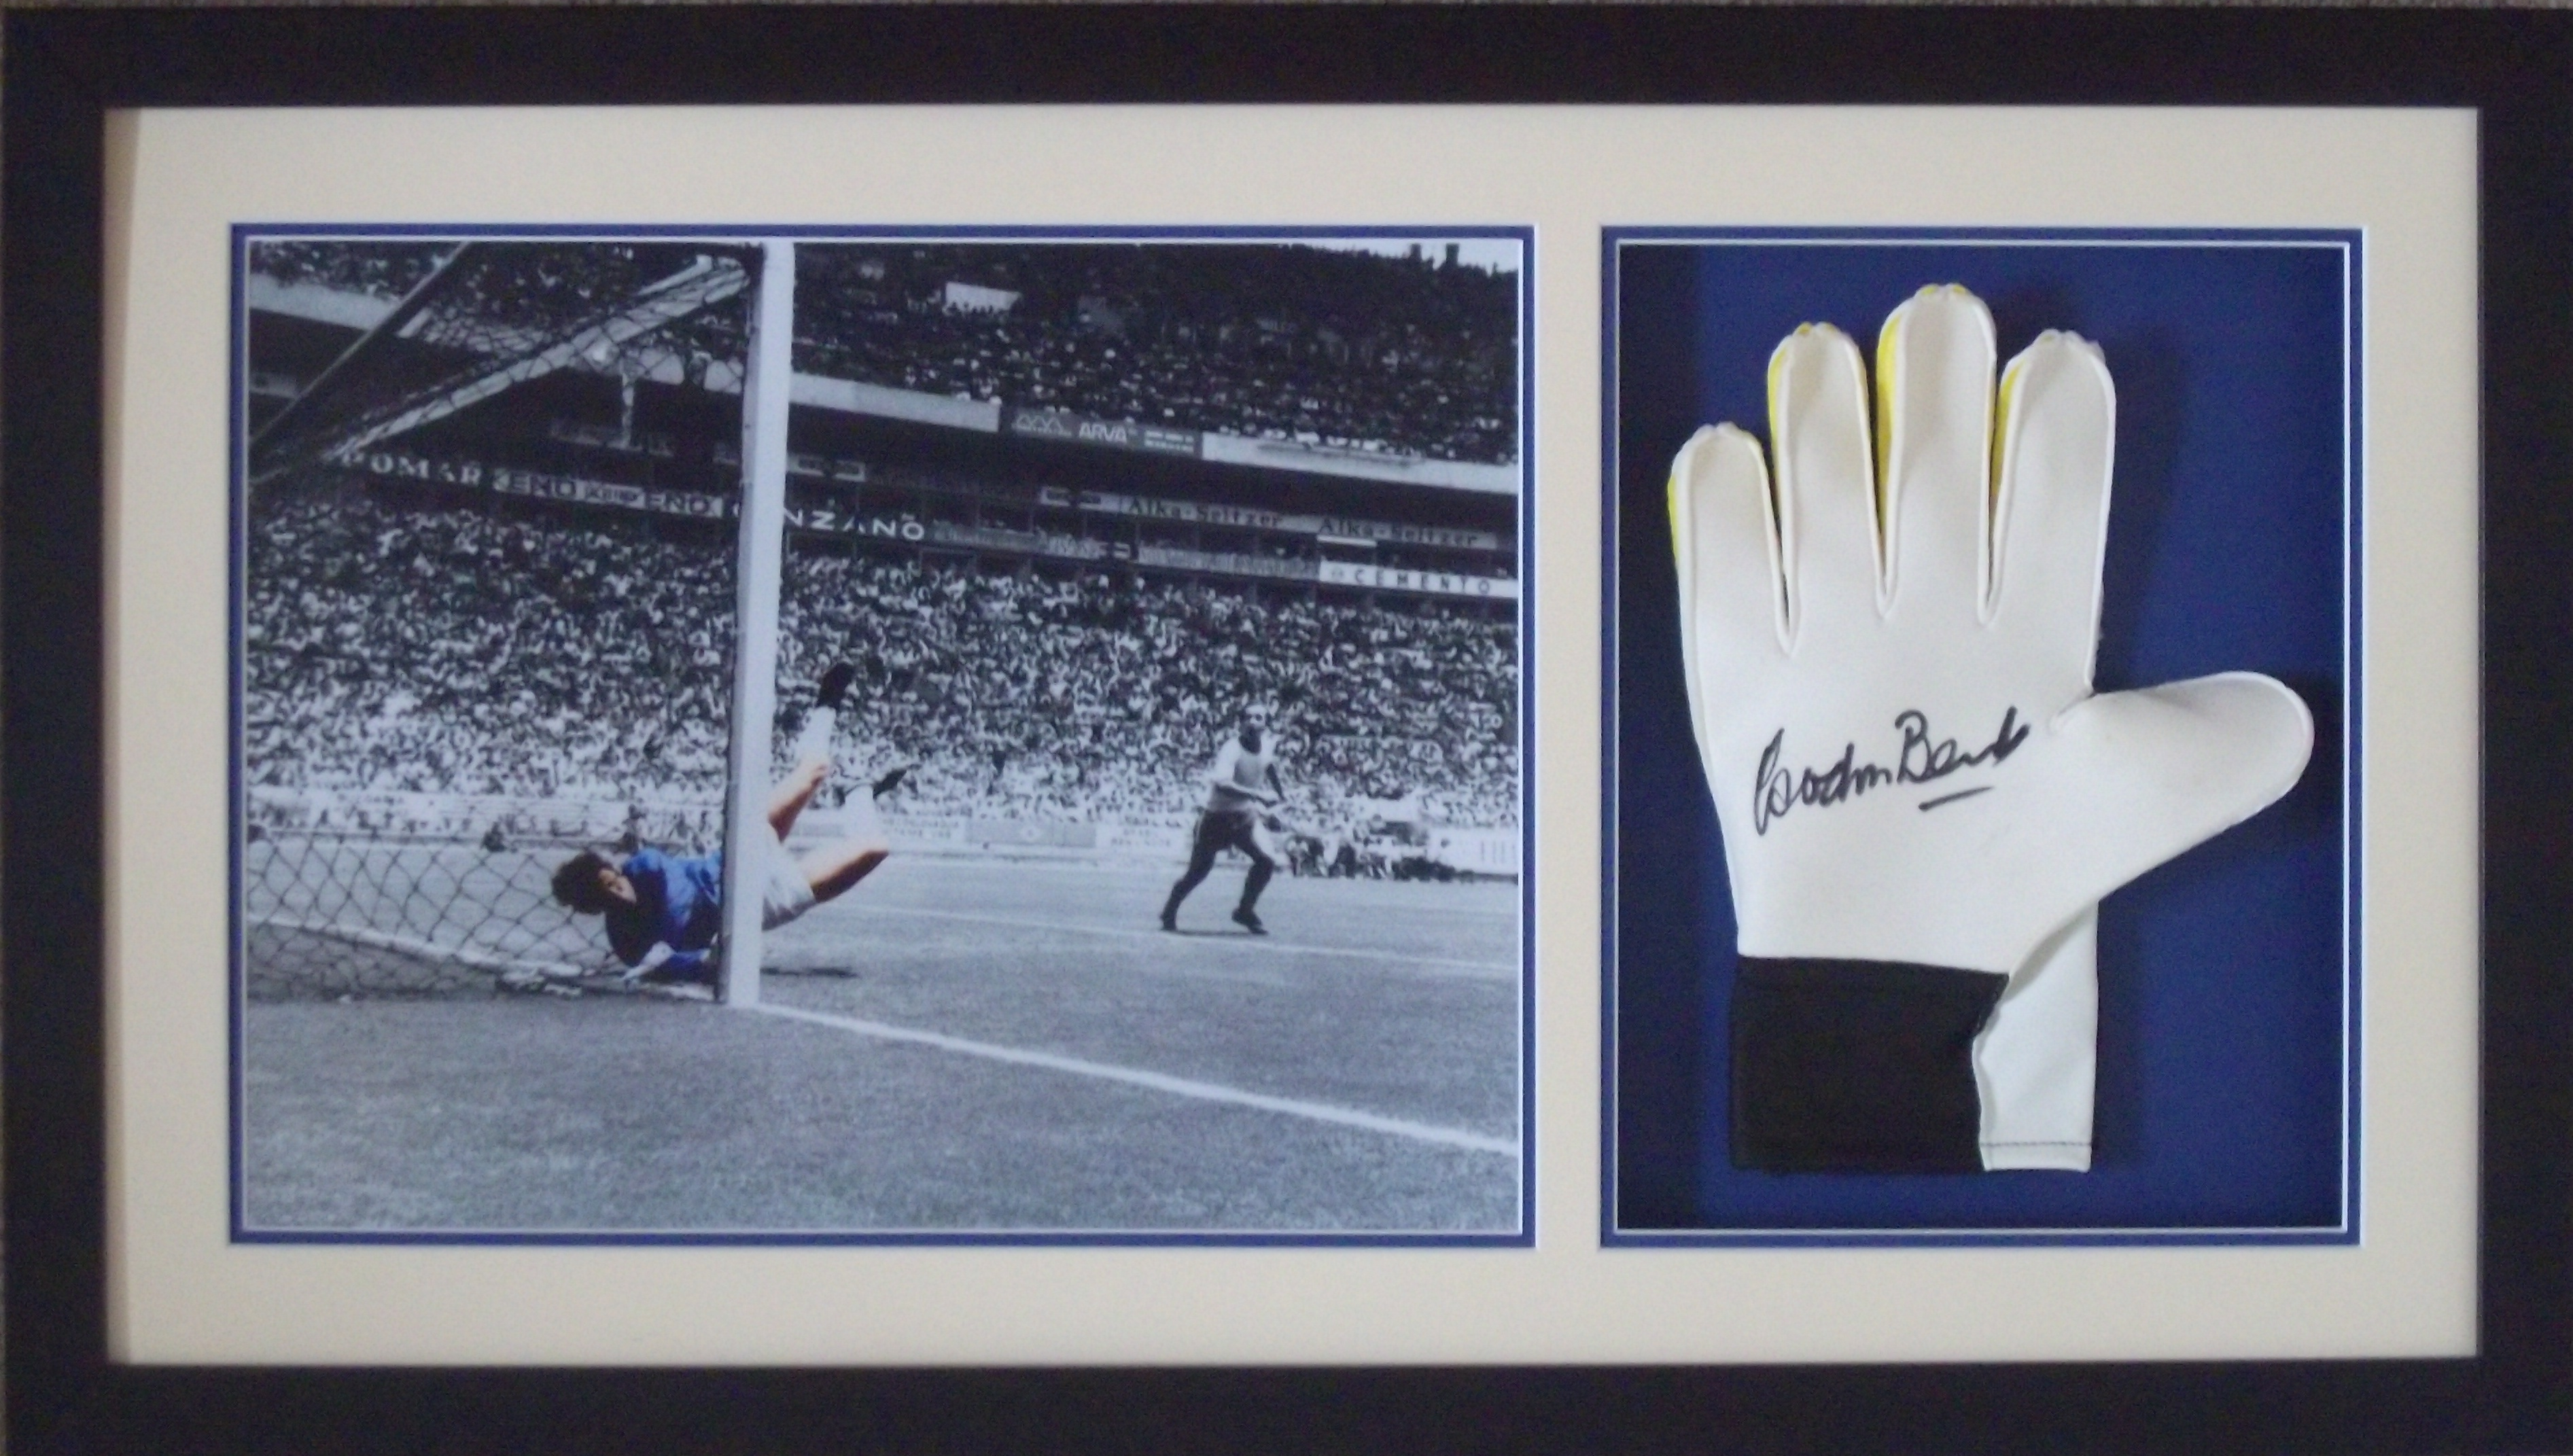 Gordon Banks Greatest Ever Save Signed Goalkeepers Glove Display